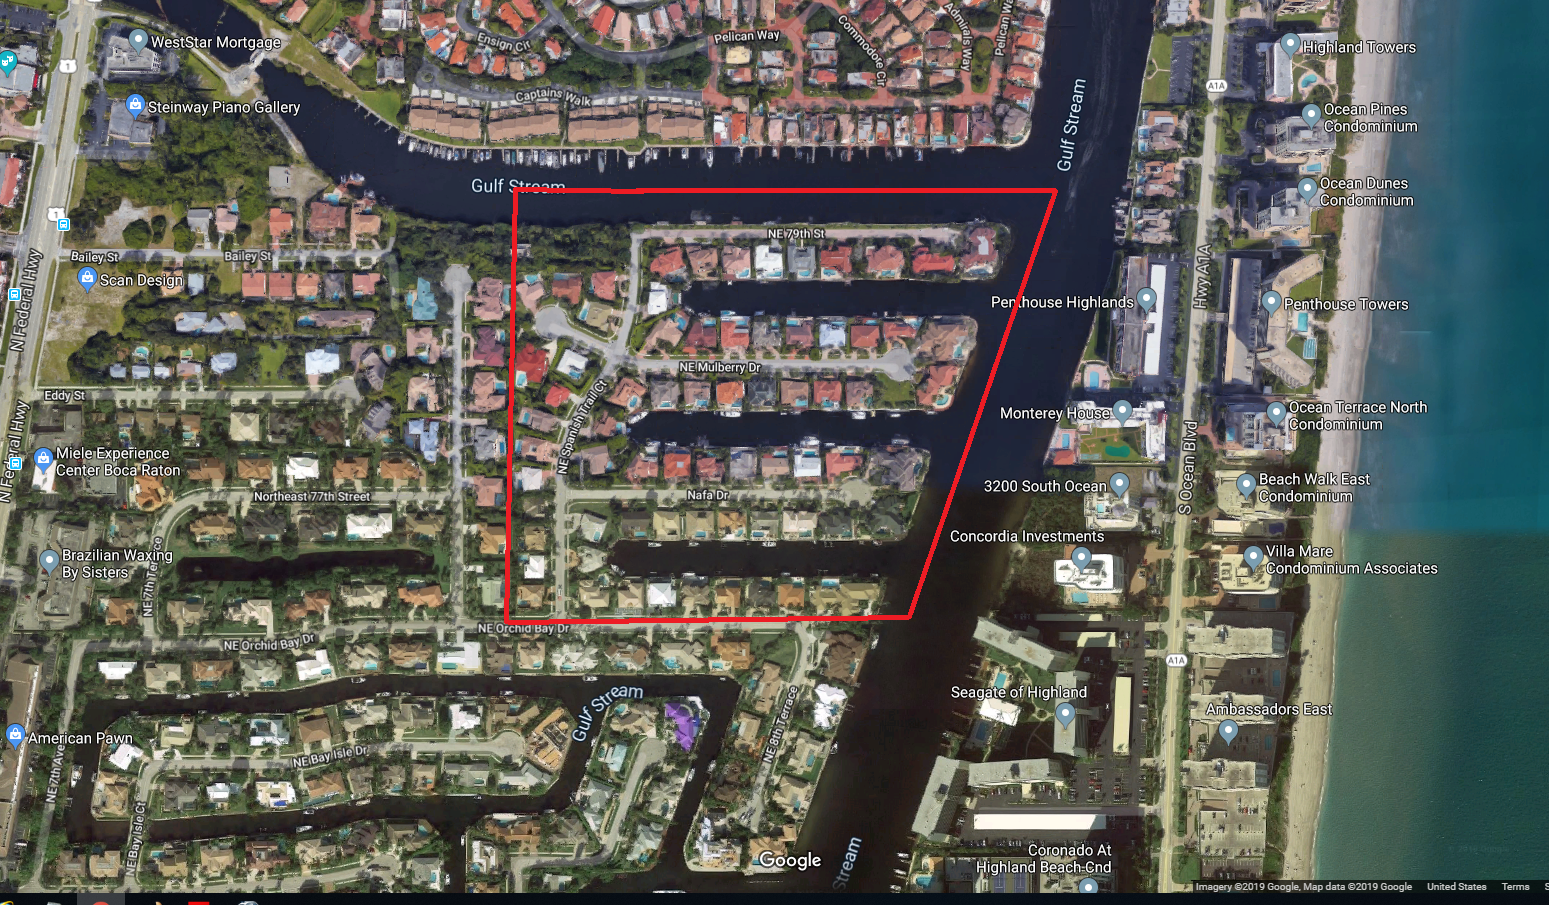 Boca Raton Walker's Cay luxury homes for sale aerial for Jean-Luc Andriot blog 032919.png